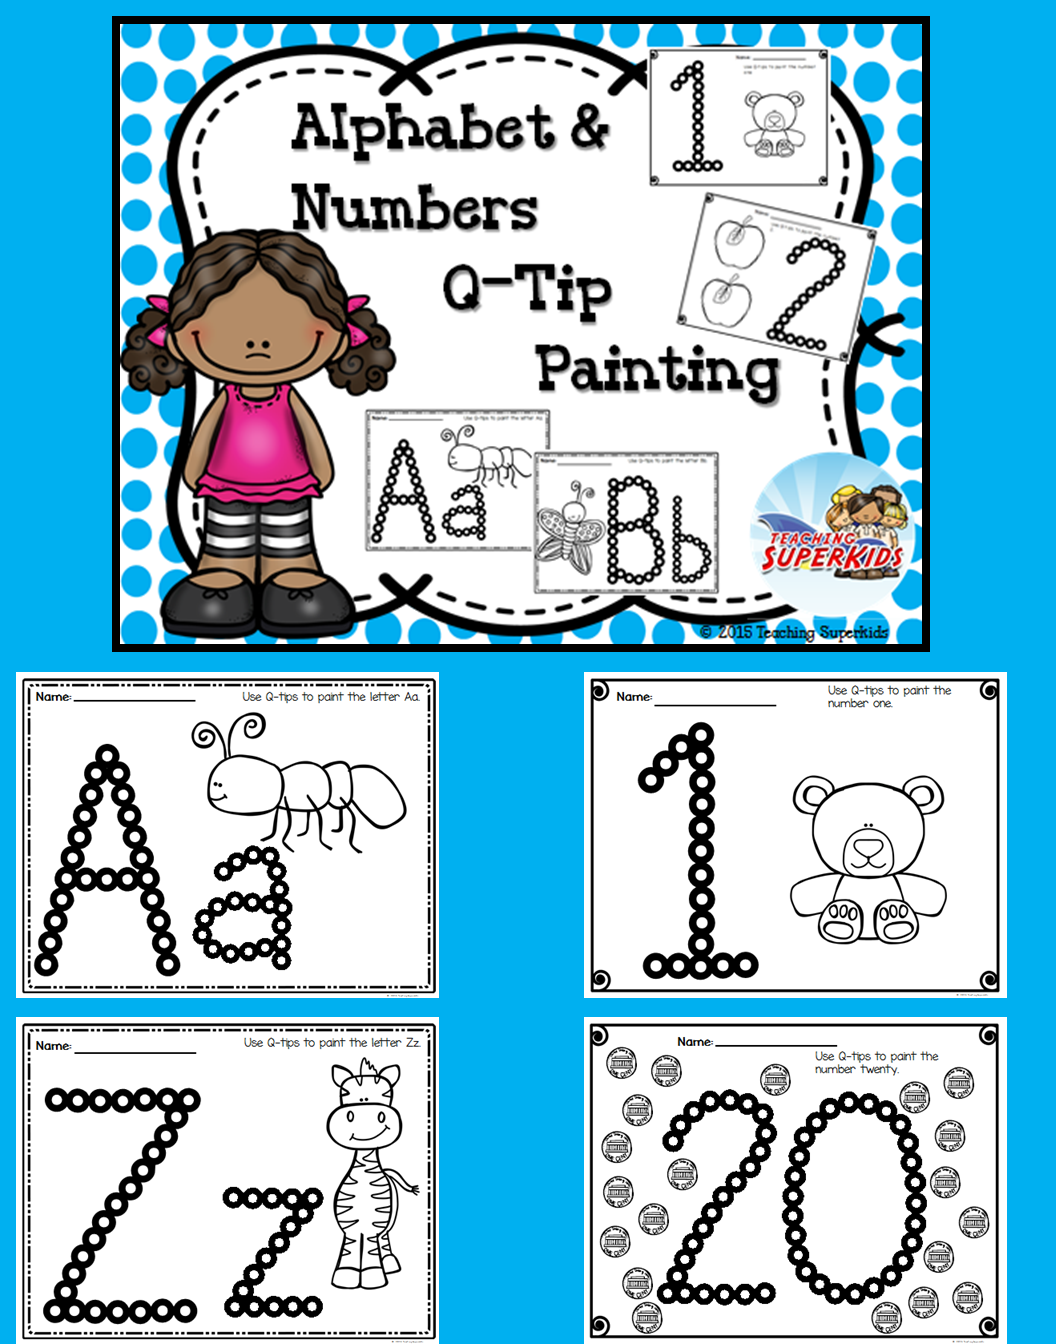 Alphabet and Number Worksheets Q-Tip Painting | Motor skills, Number ...